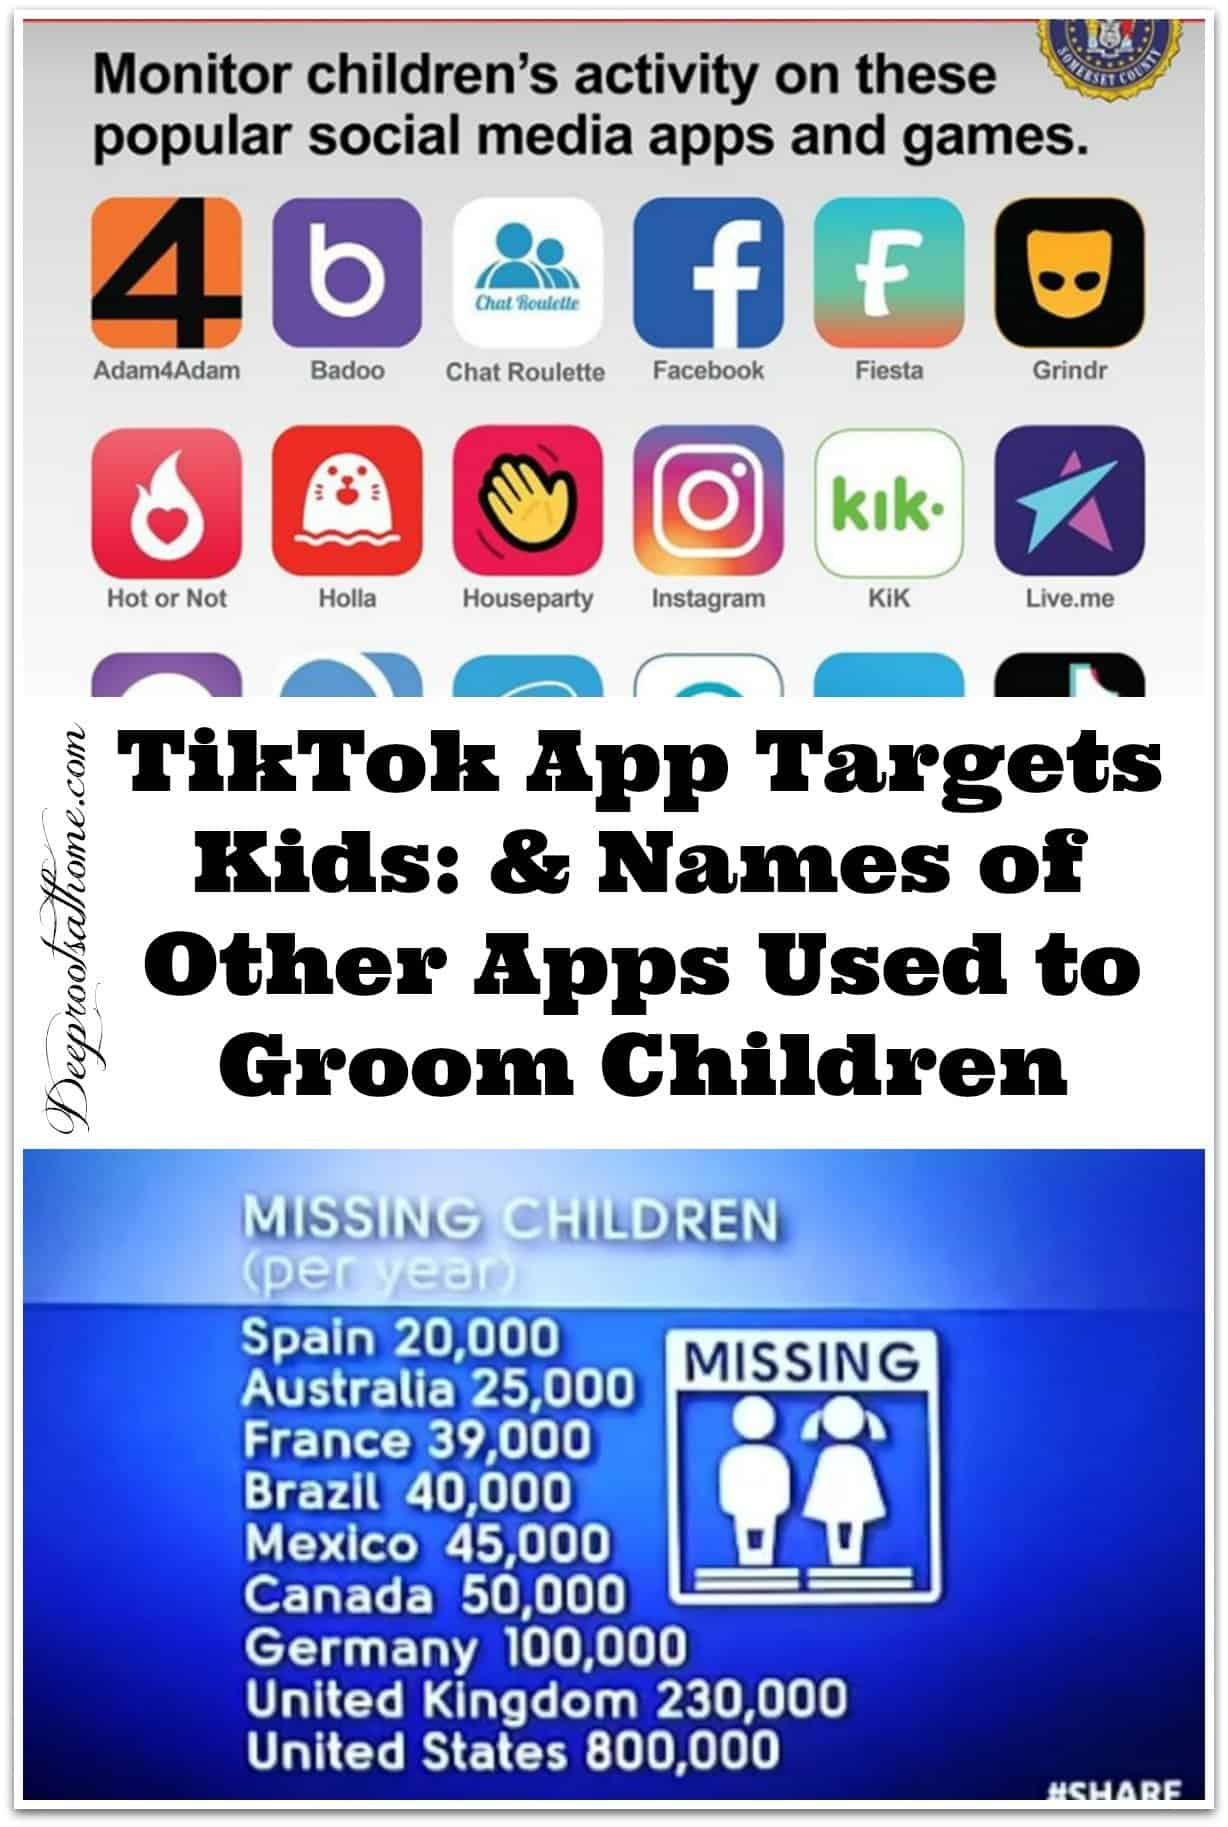 TikTok App Targets Kids: & Names of Other Apps That Groom Kids